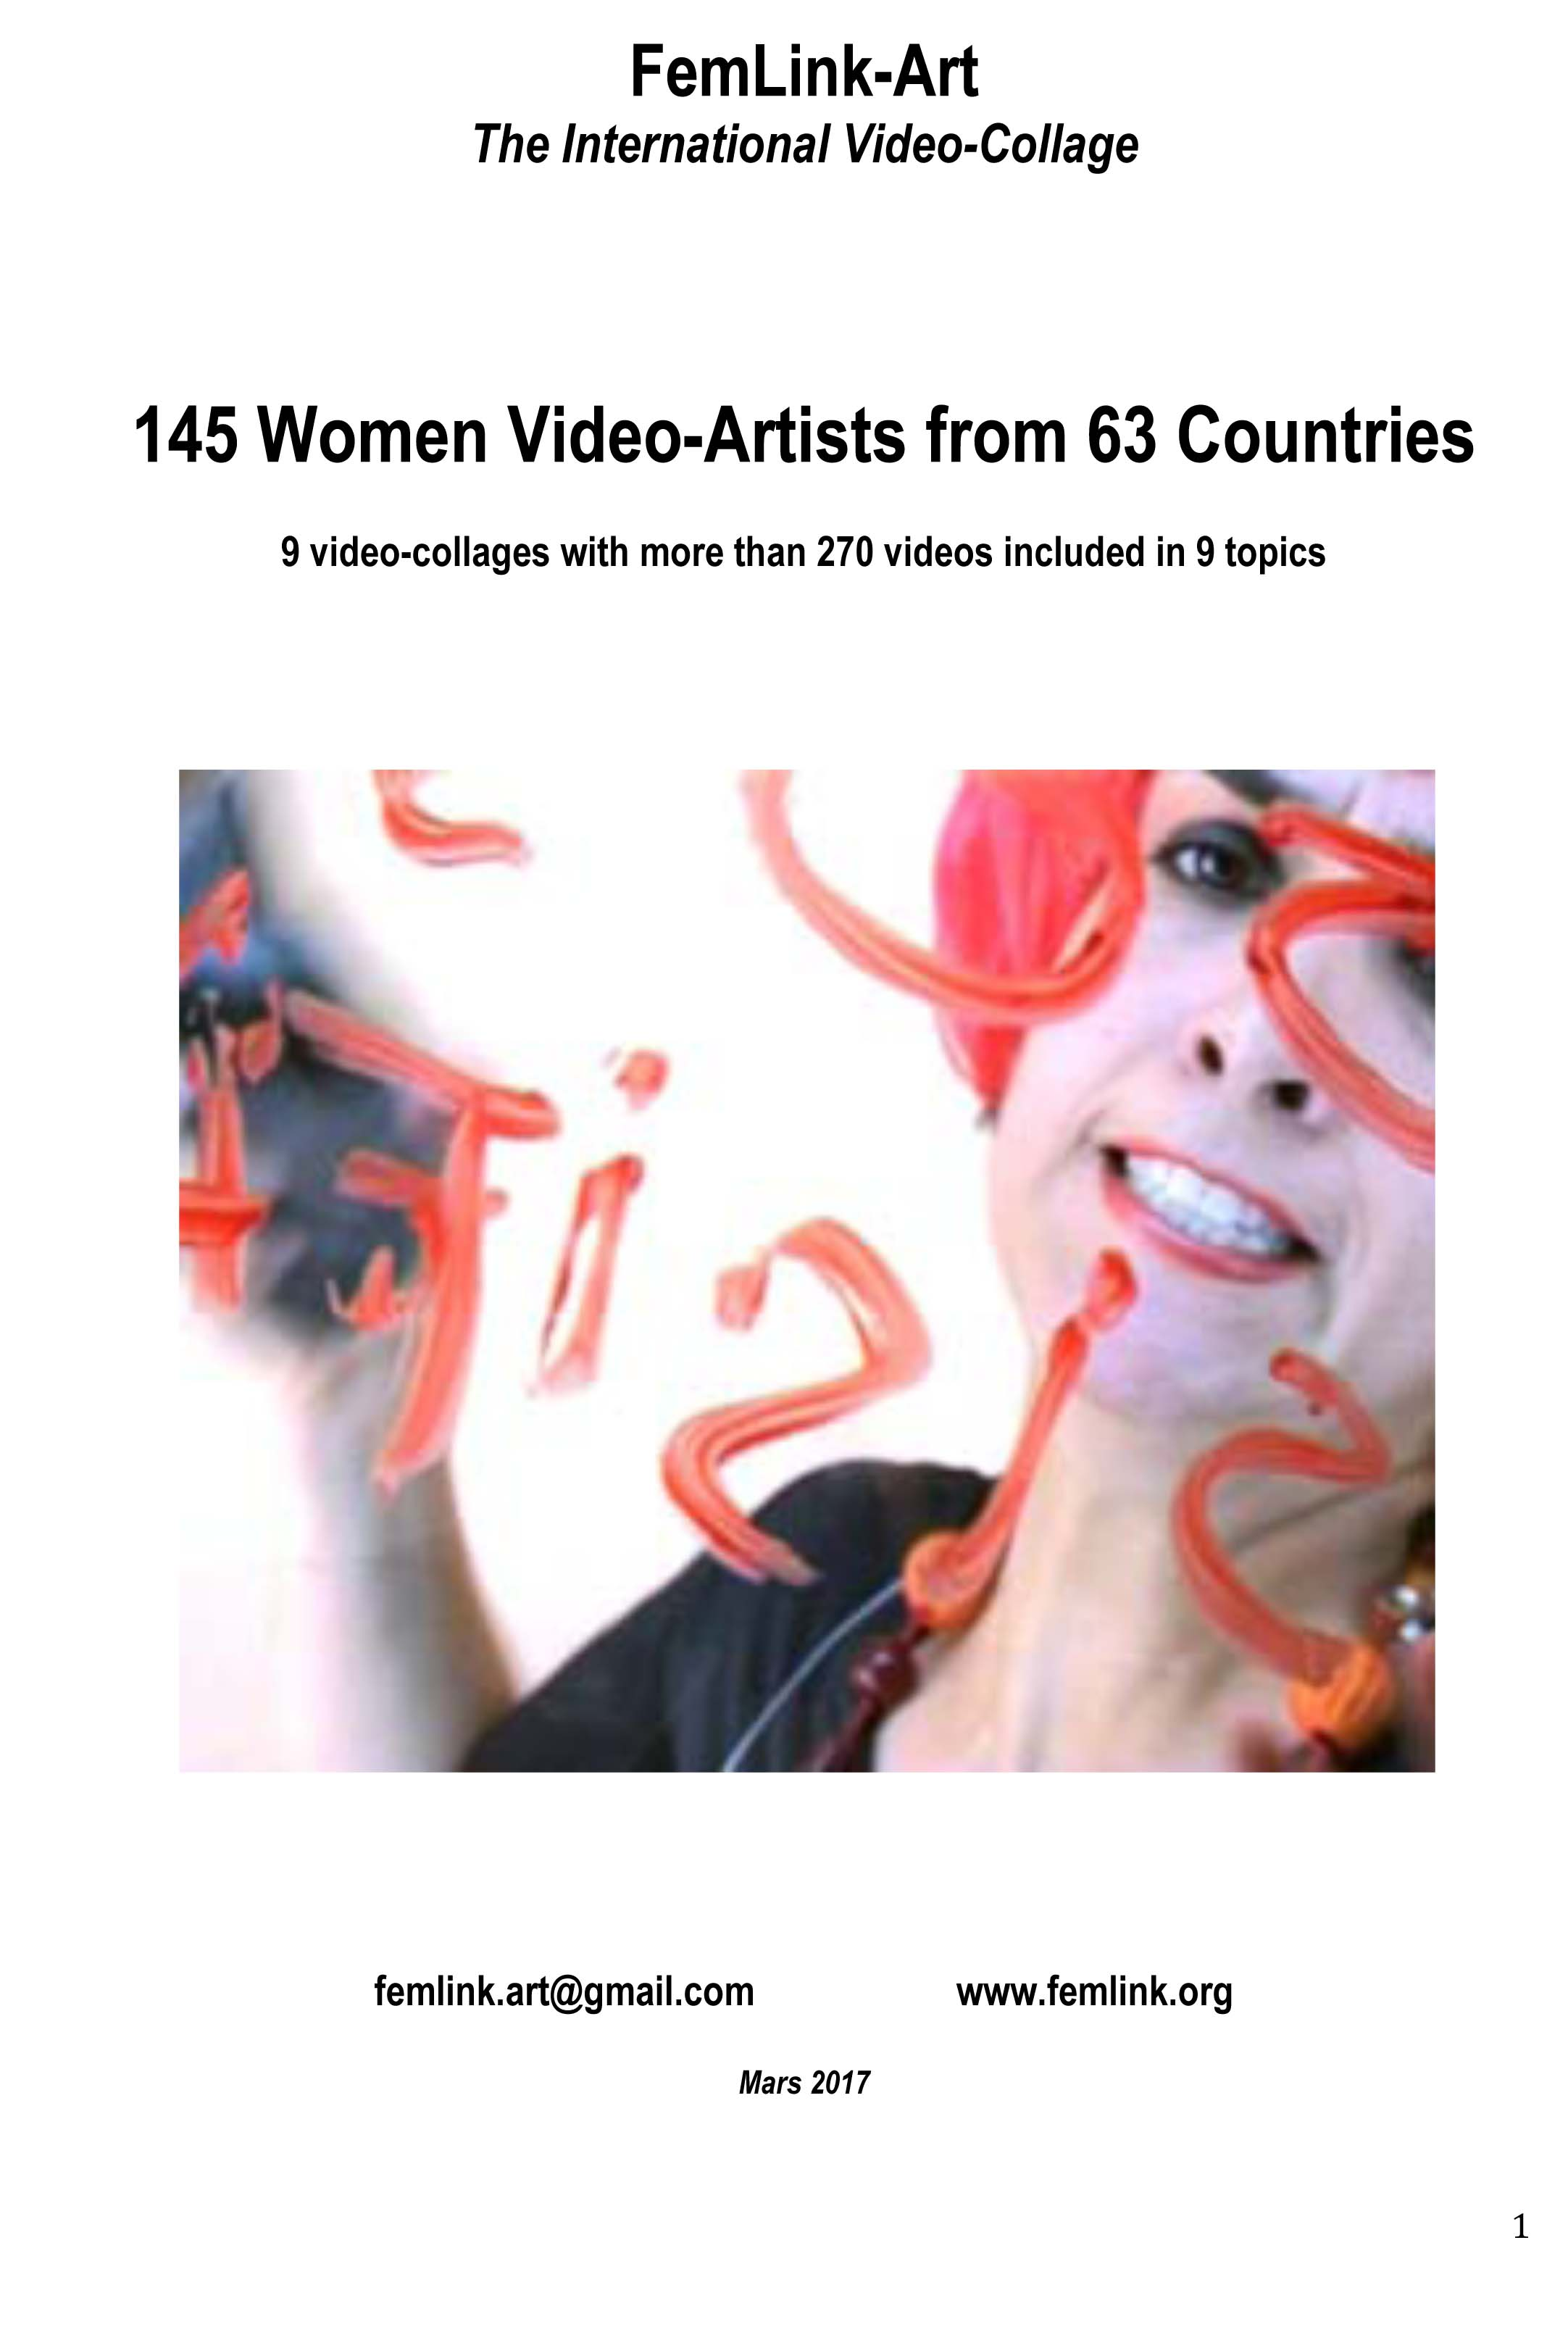 145 Women Video-Artists from 63 Countries